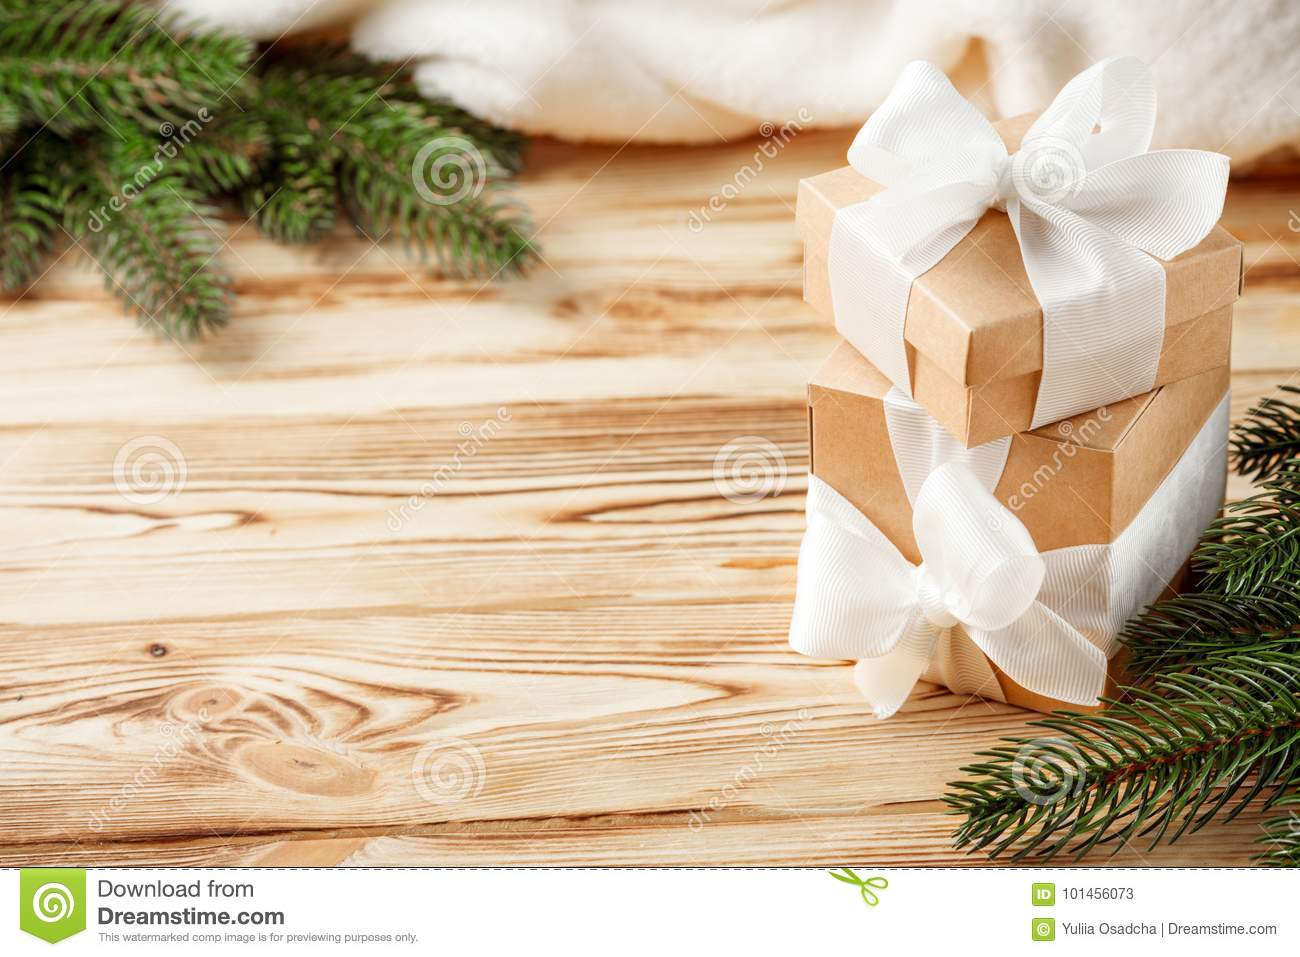 Craft Gift Boxes With White Ribbon Bow Green Christmas Tree Decorations White Plaid On Wooden Background Xmas And New Year Co Stock Image Image Of Paper Happy 101456073